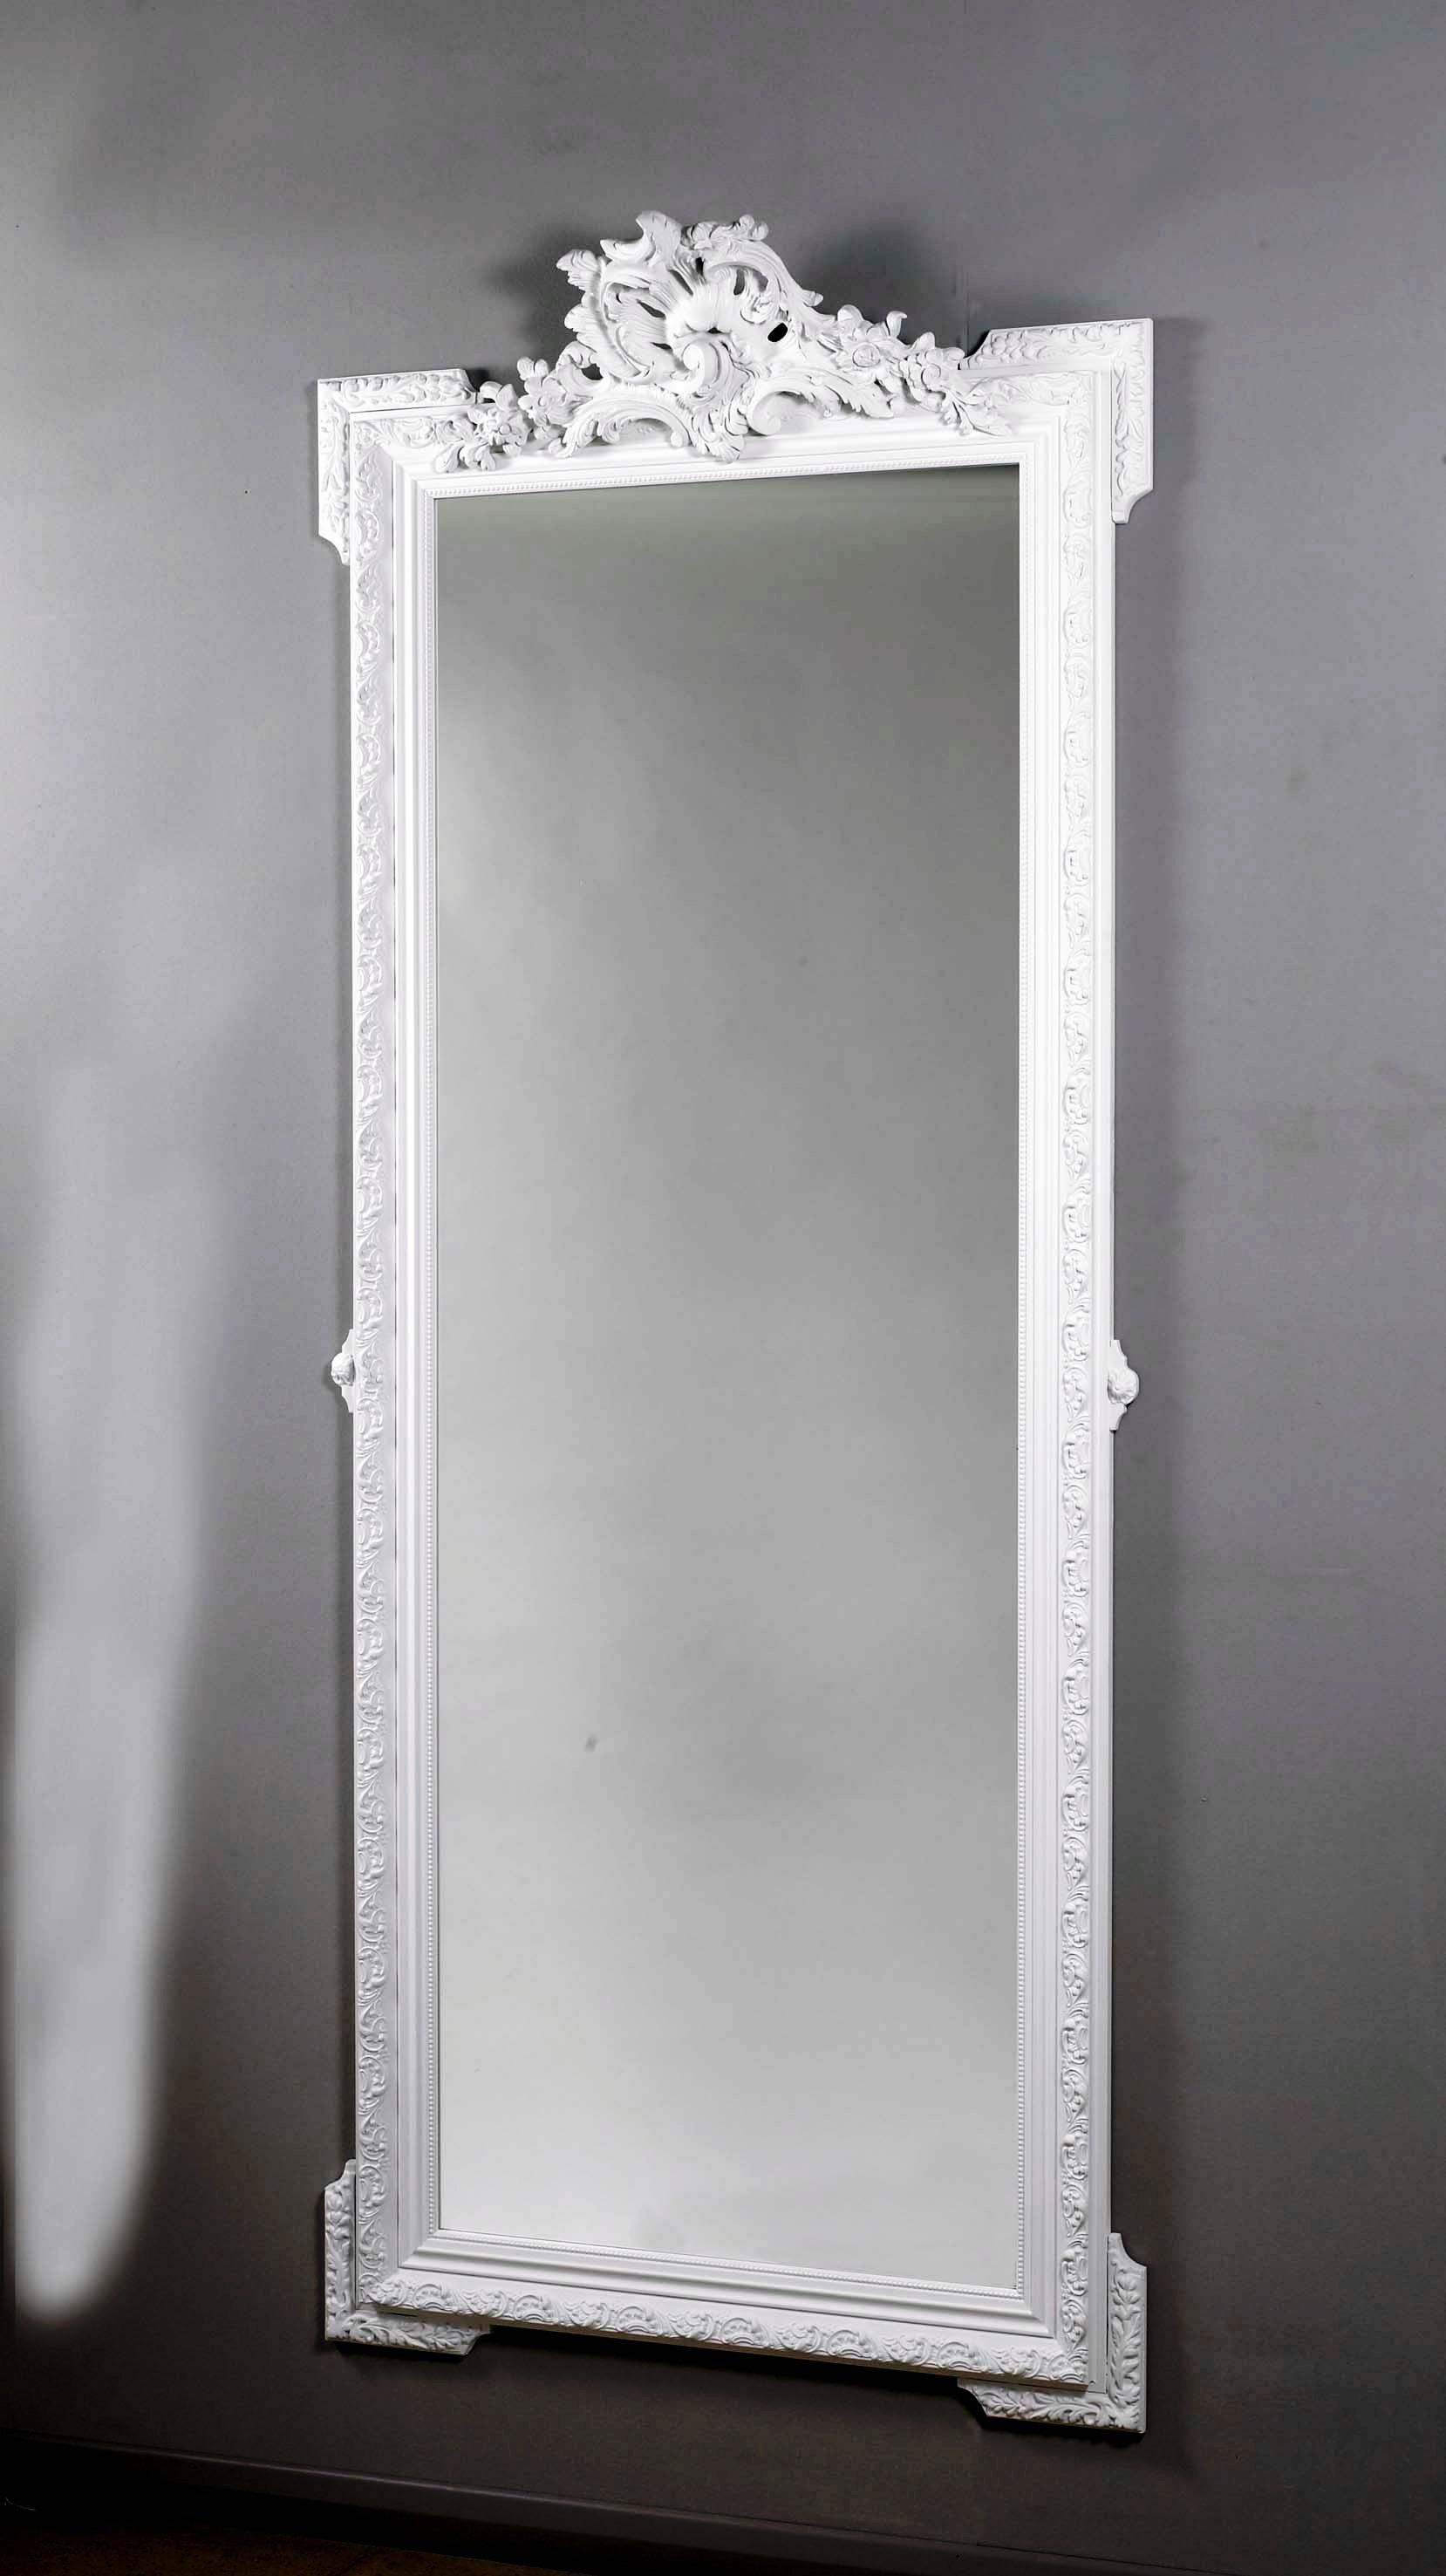 White Full Length Wall Mirror 144 Unique Decoration And Full intended for Decorative Full Length Mirrors (Image 25 of 25)